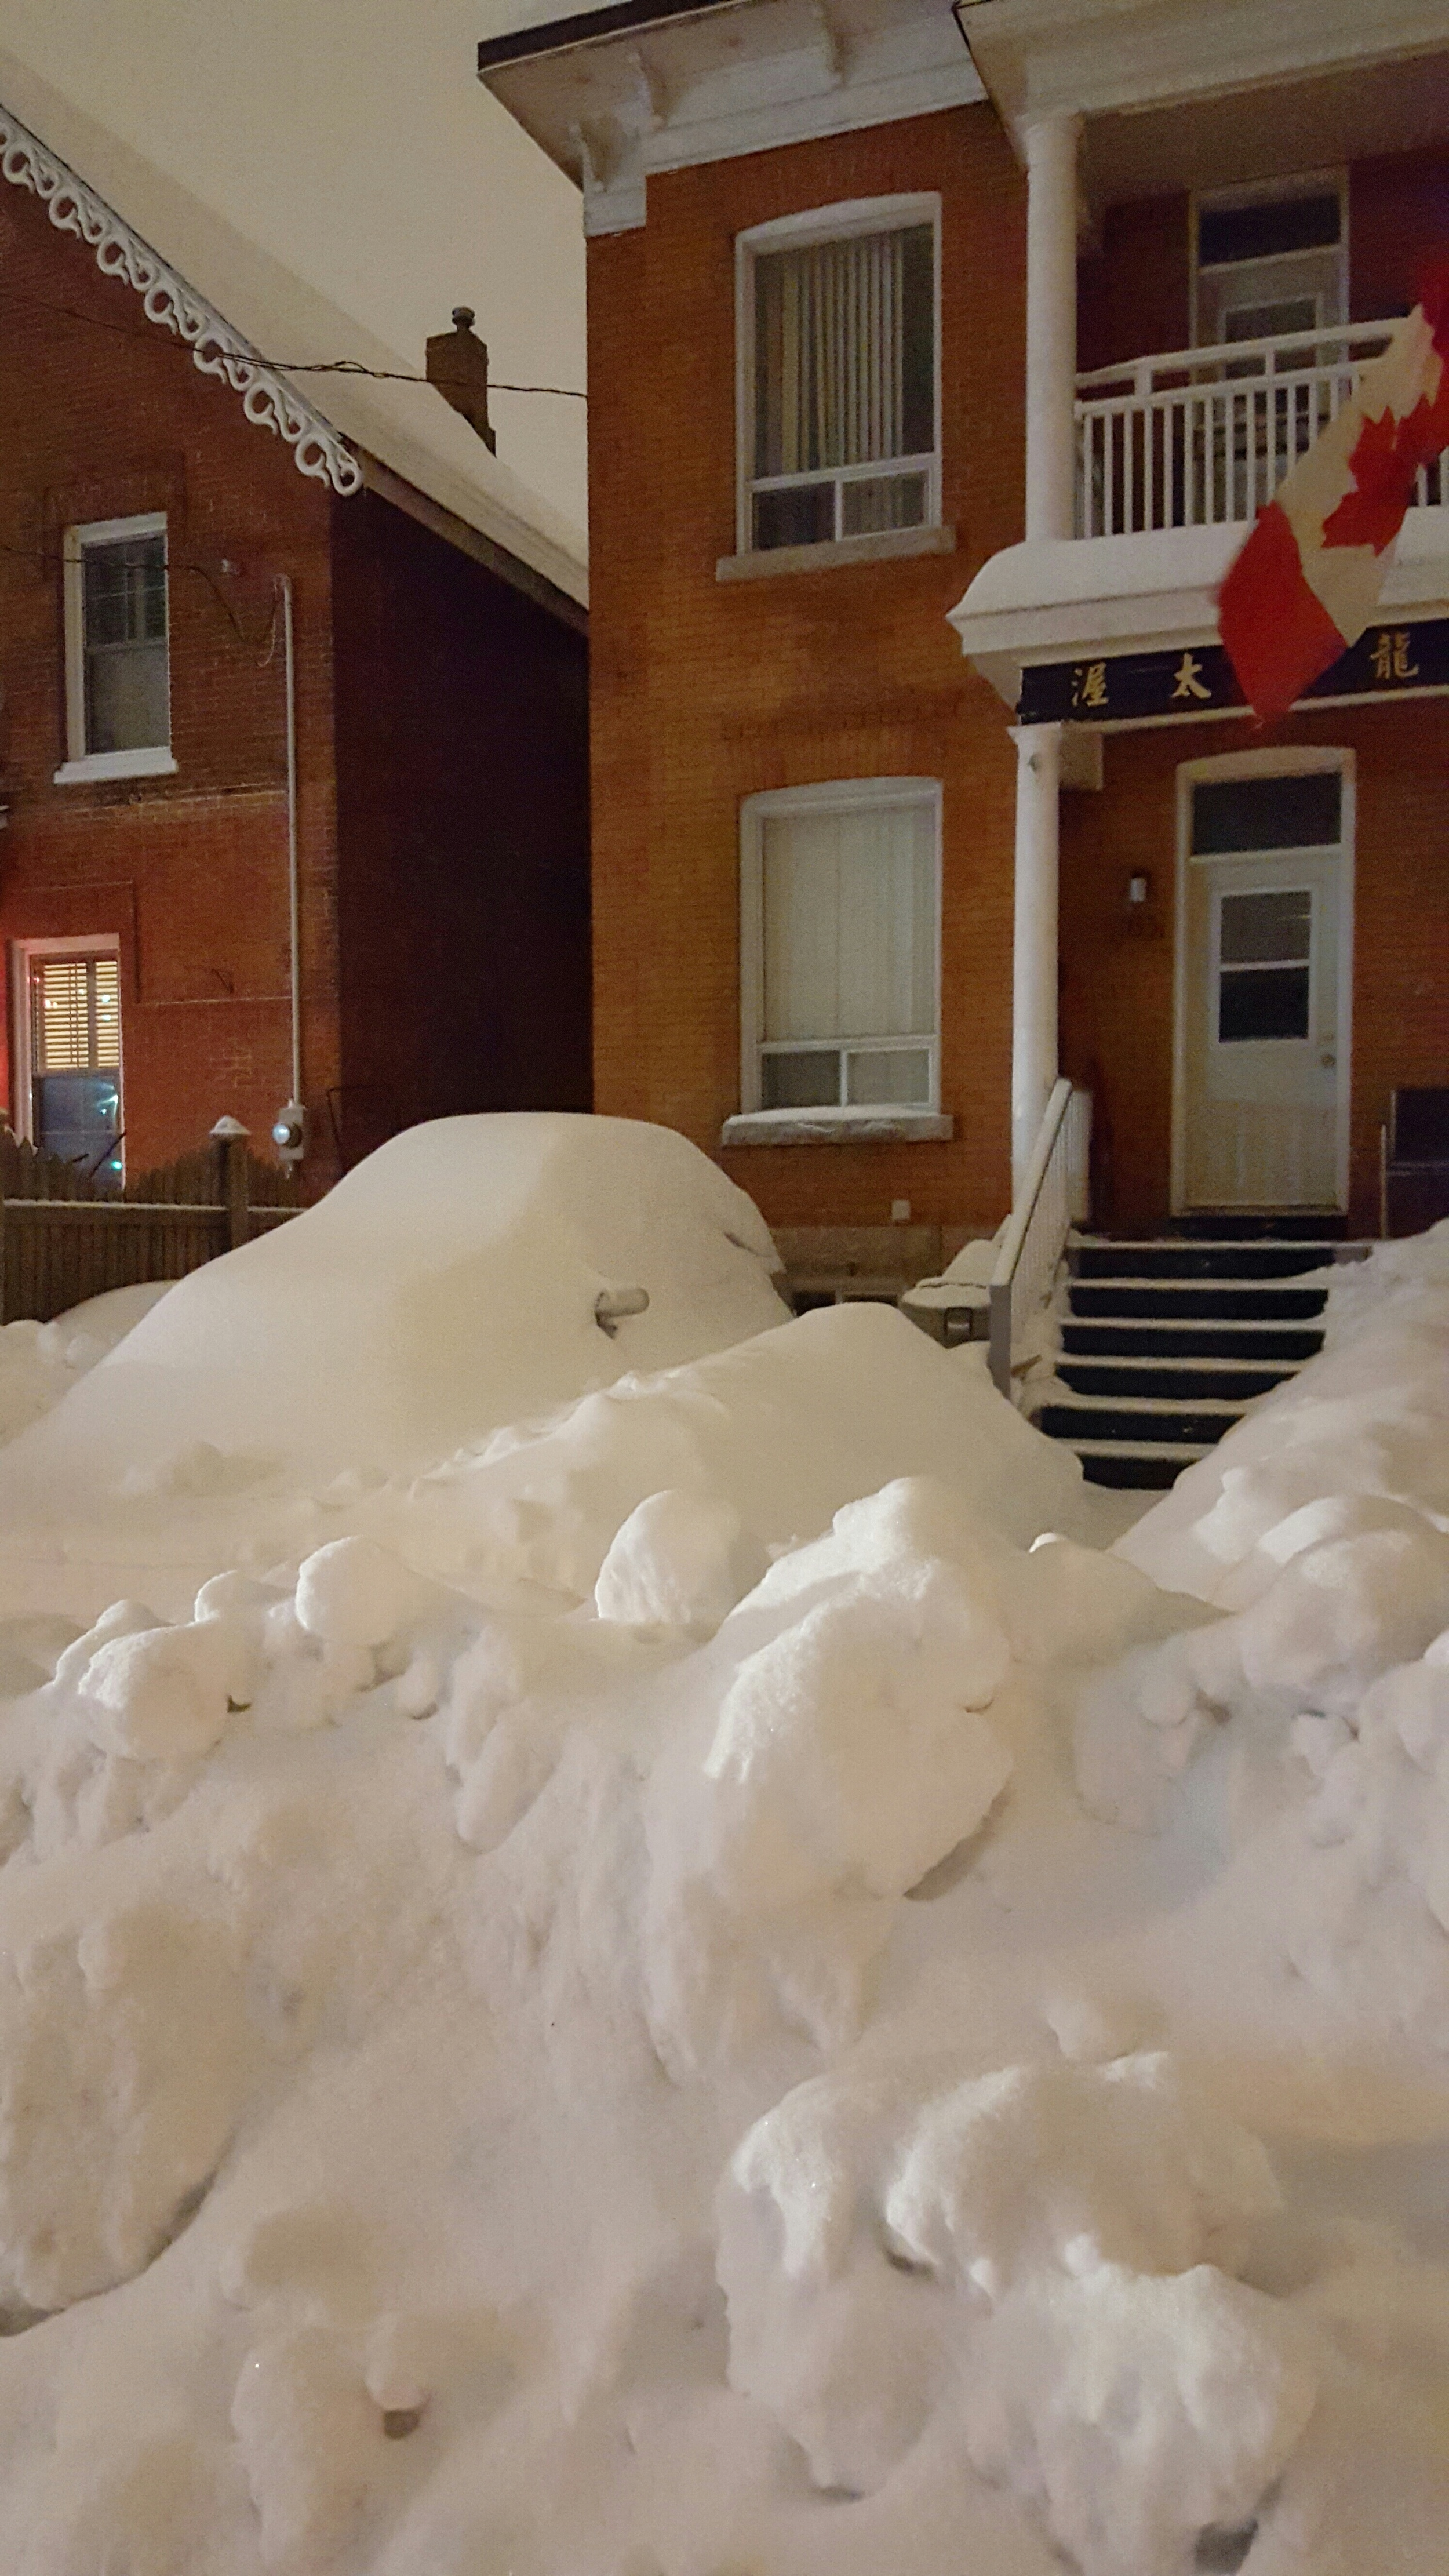 We might get snow like this from time to time, but we definitely don't live in igloos, wear tuques all year round and own dog sleds. I mean, some of us might, but those are personal choices. I'm not one to judge (photo taken in Chinatown, Ottawa).